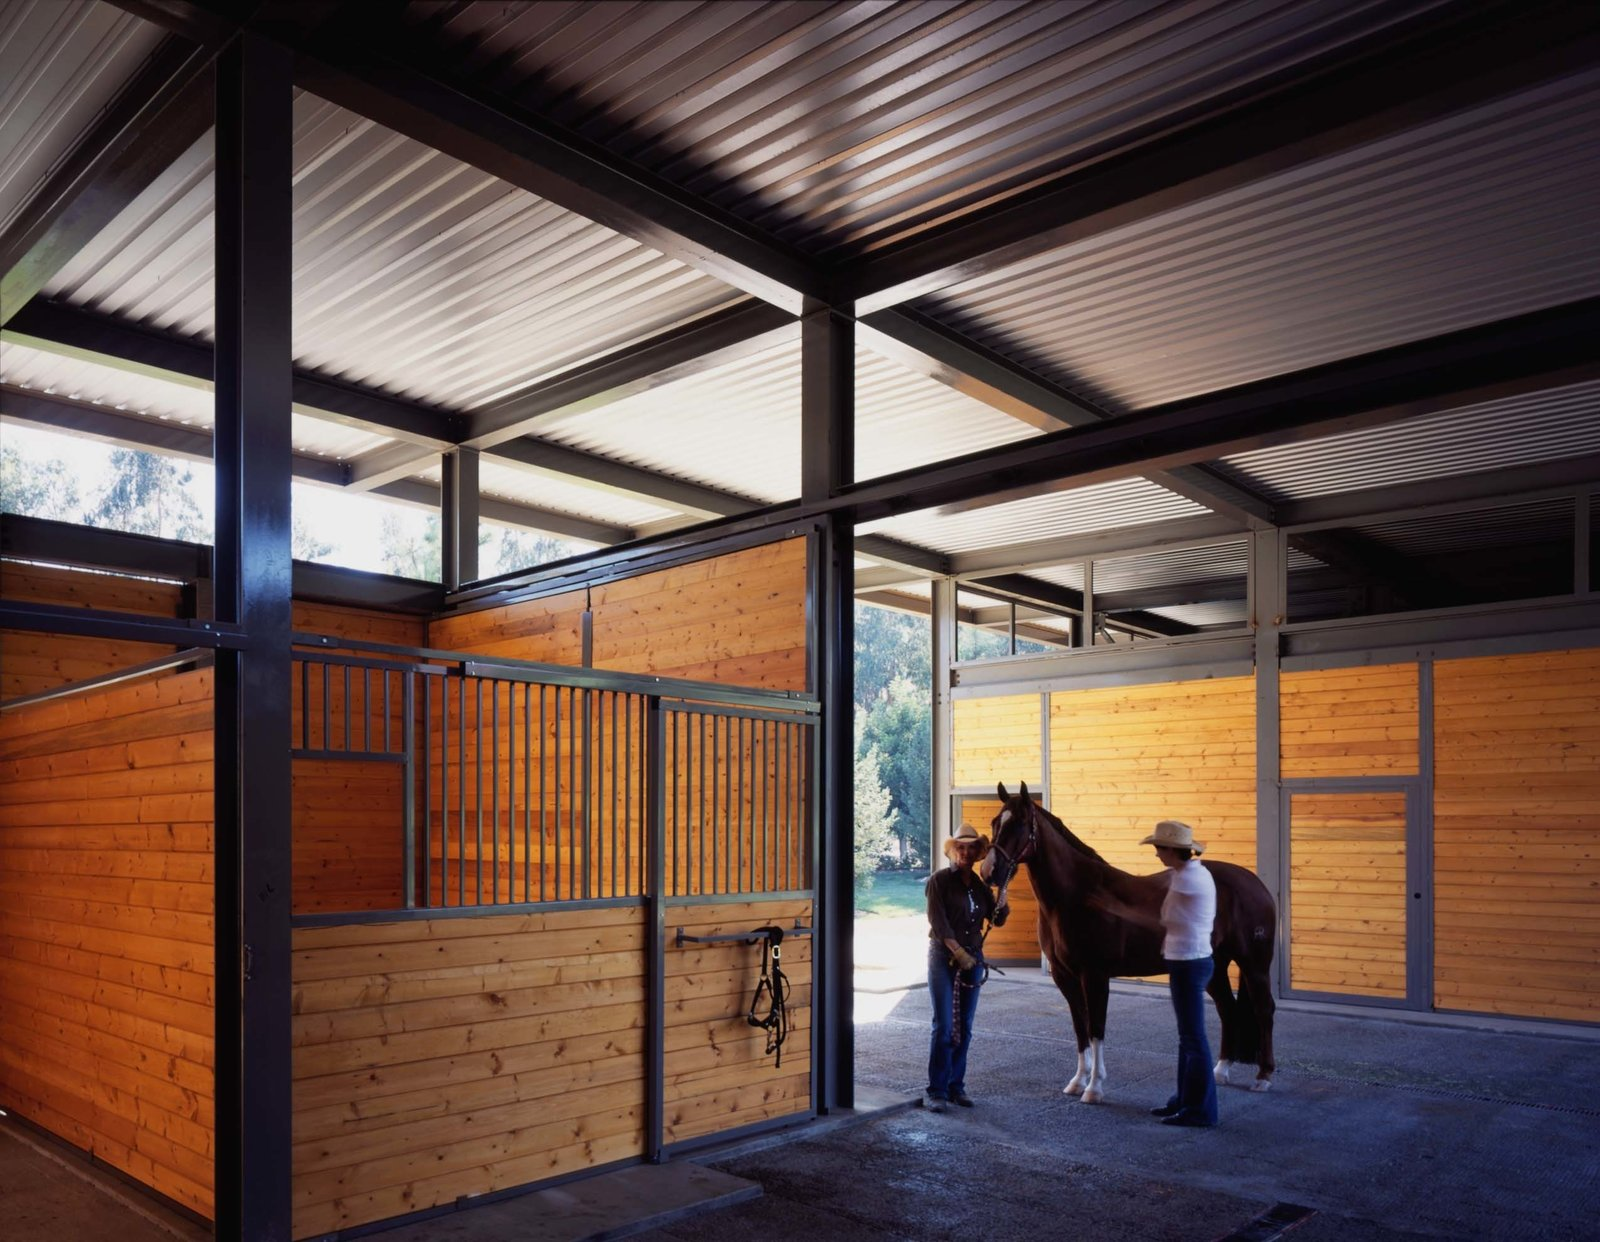 The steel structural system is designed based on a simple grid, constructed to the ideal dimensions for a horse stable. Natural ventilation is encouraged via open clearstories, and the large roof overhang protects the cladding from the rain.  Somis Hay Barn